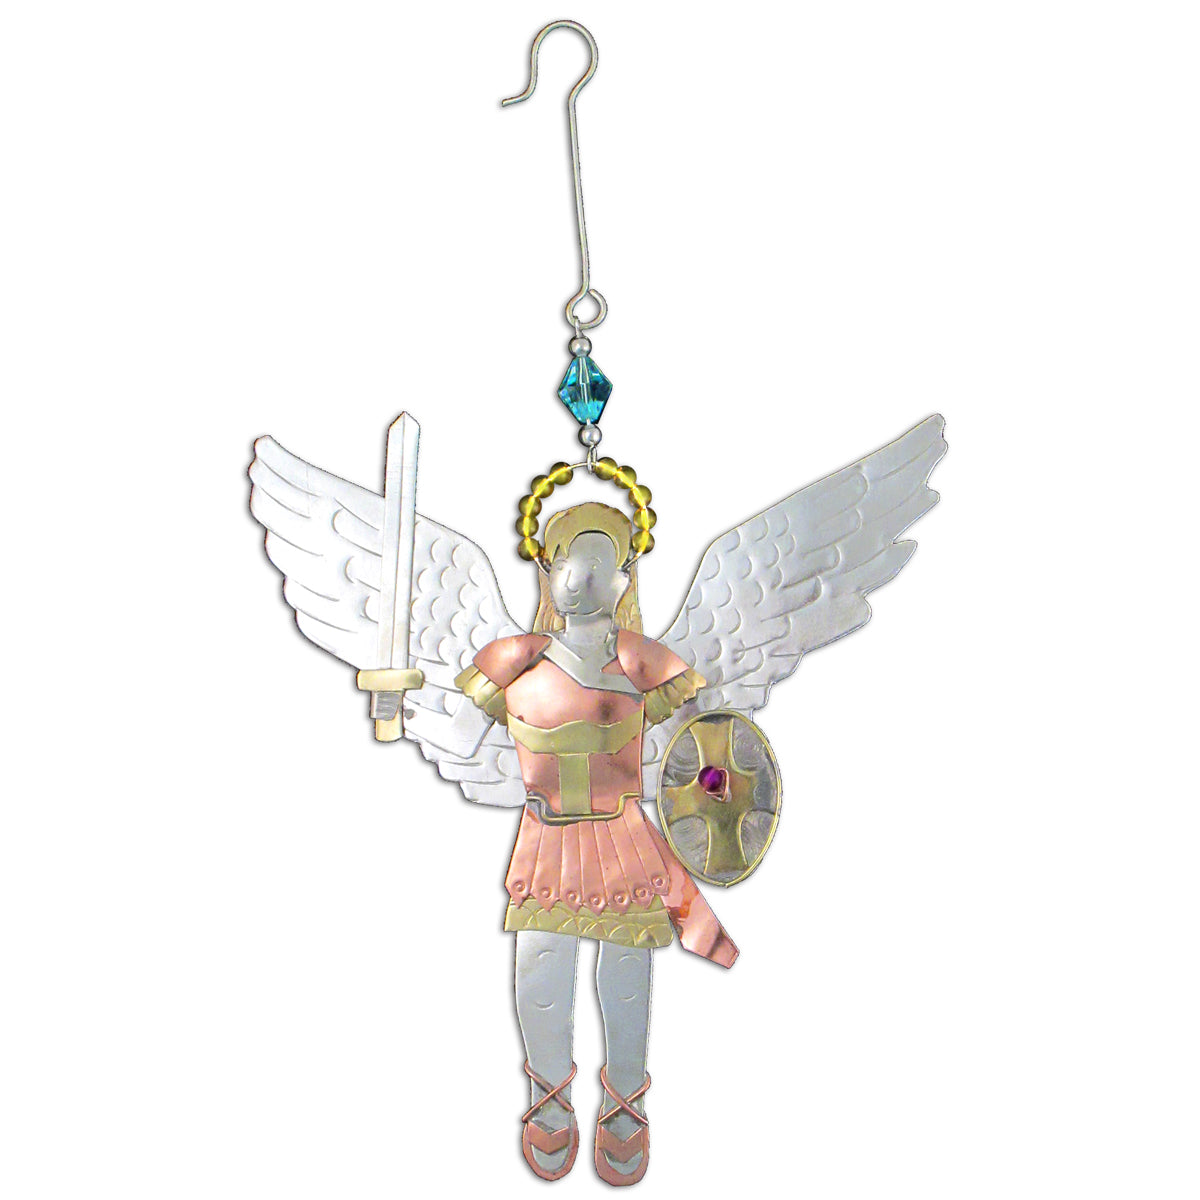 Archangel Michael Ornament